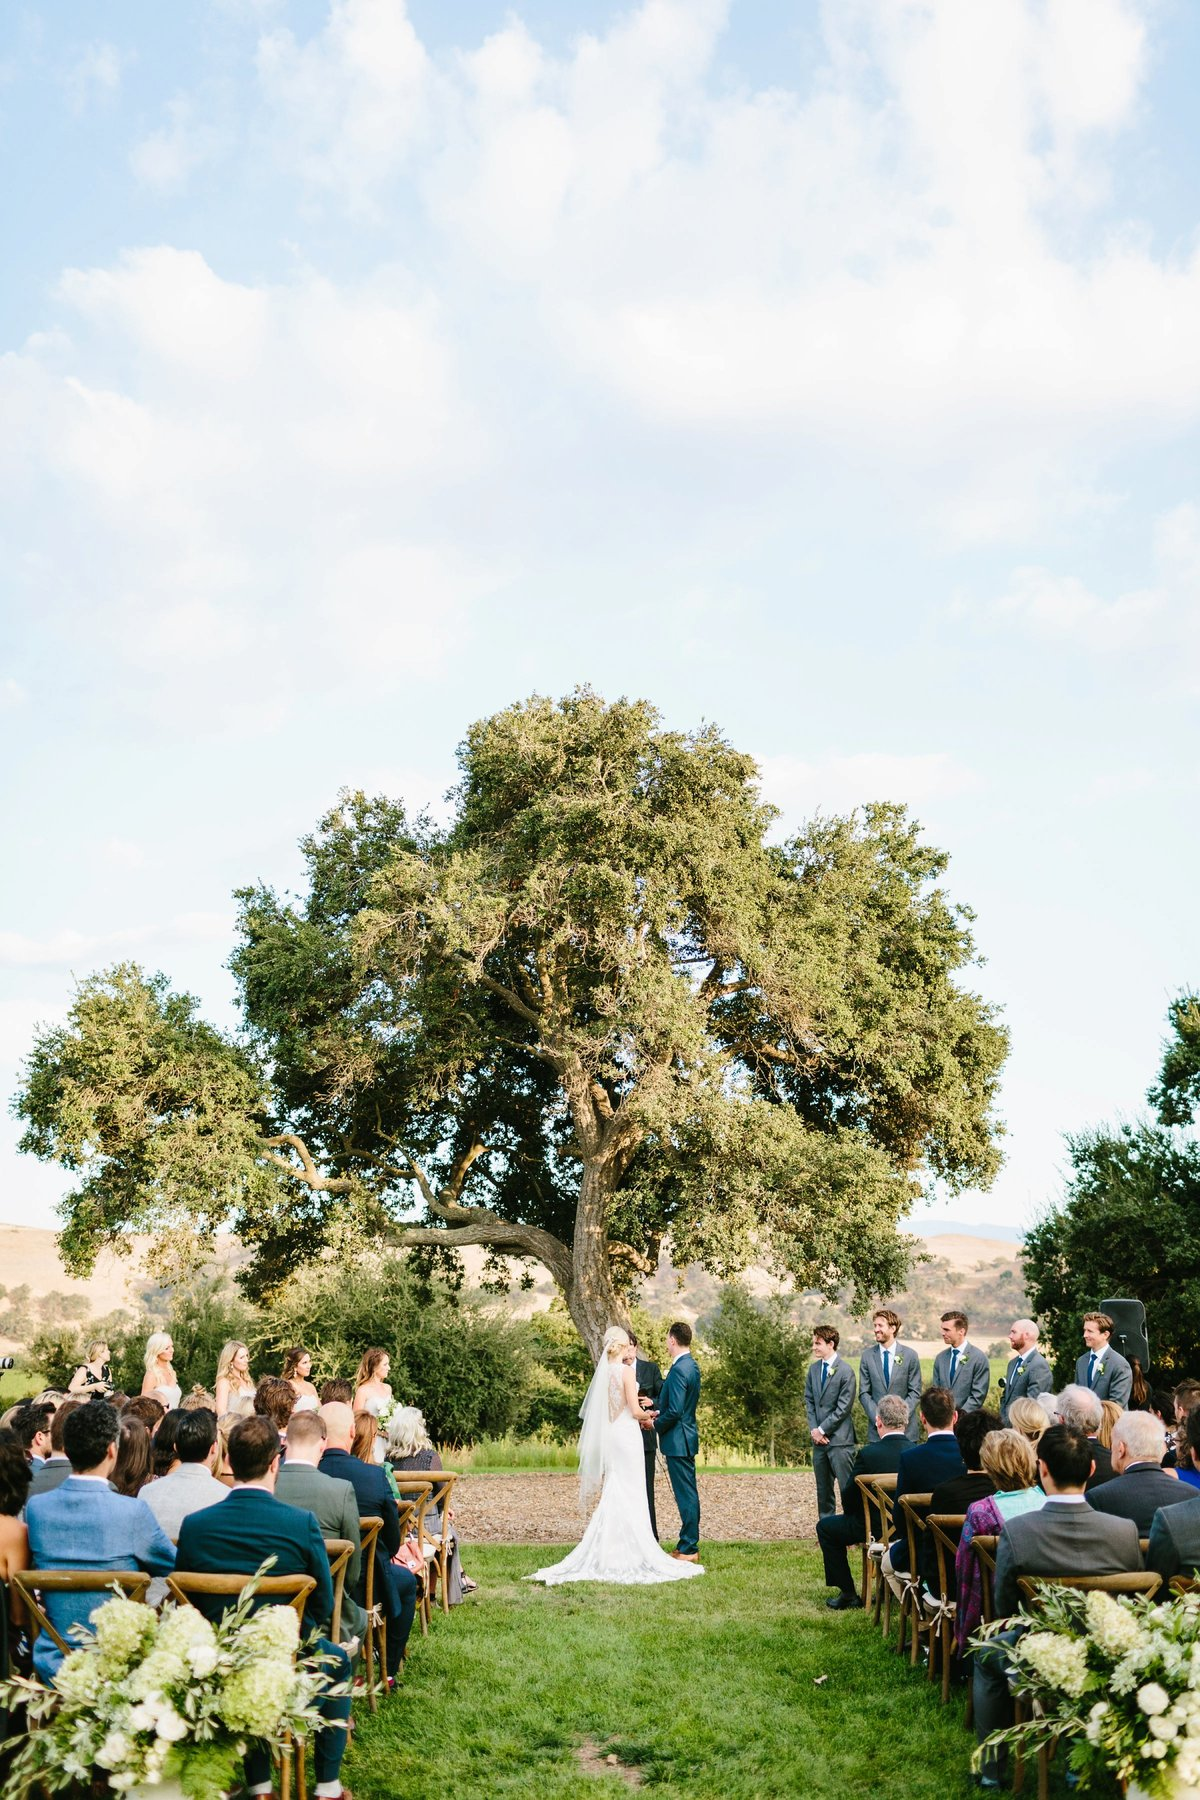 Wedding Photos-Jodee Debes Photography-148